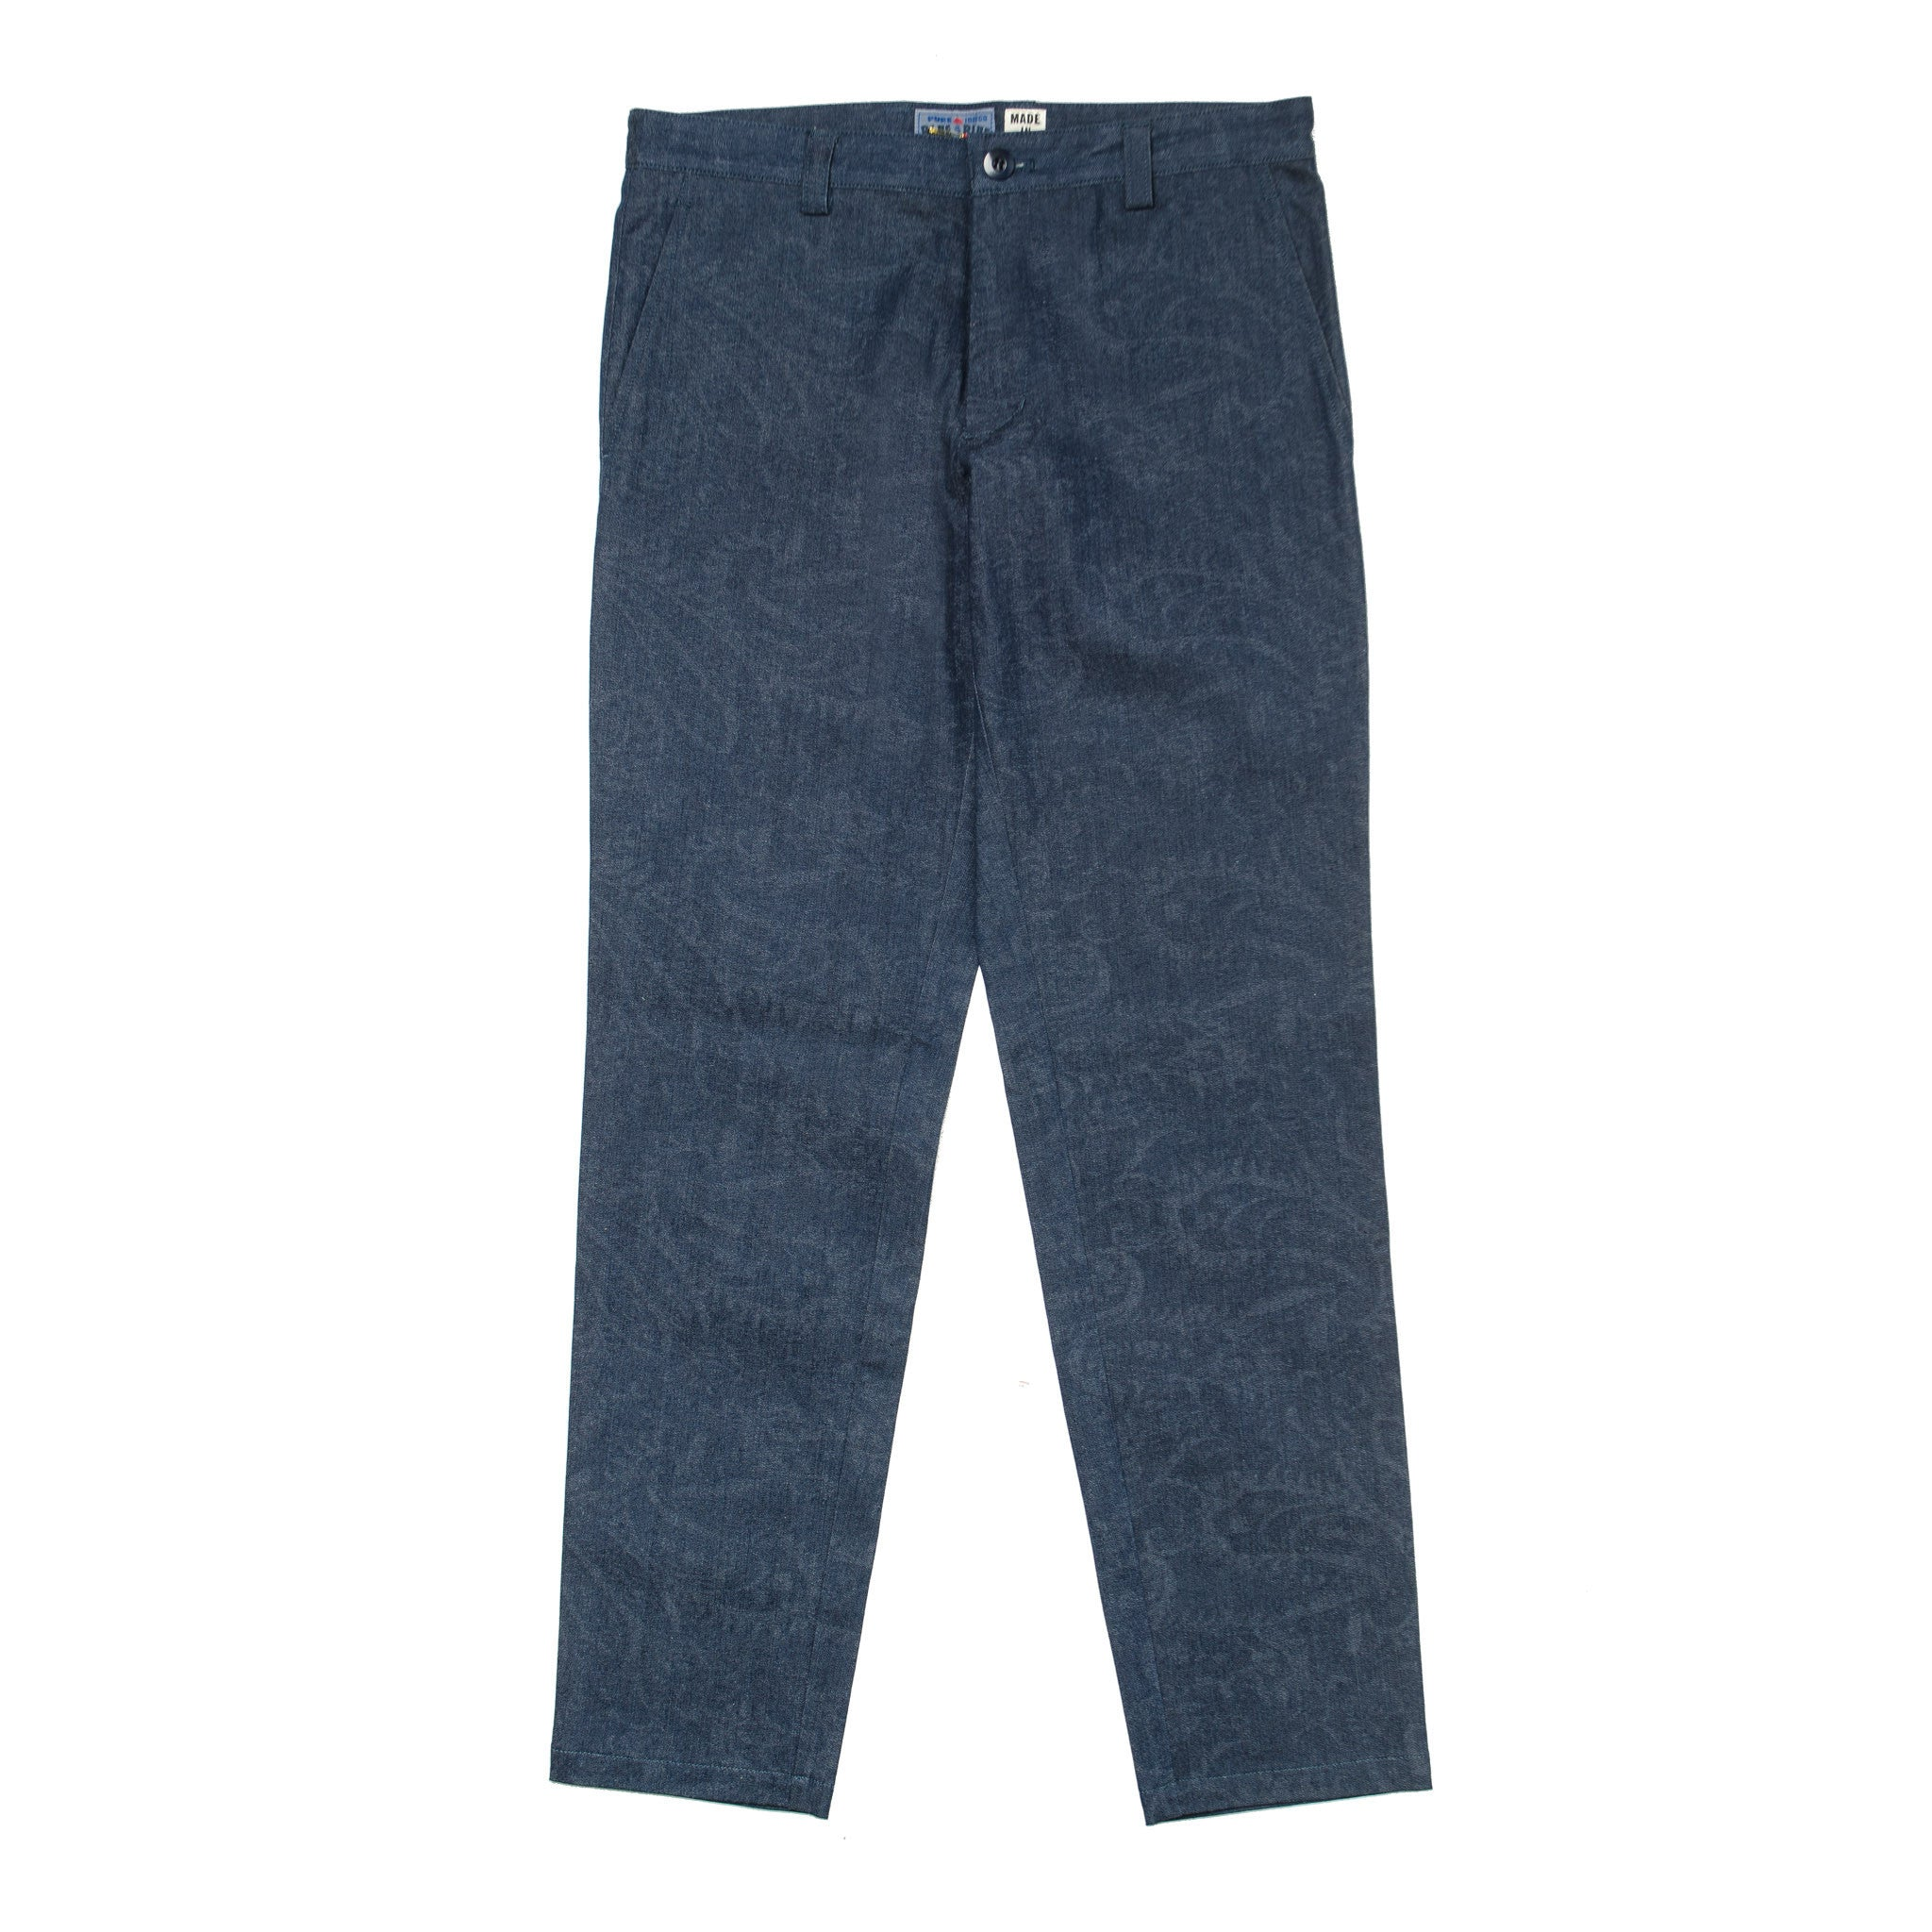 Paisley JCRD Stretch Denim